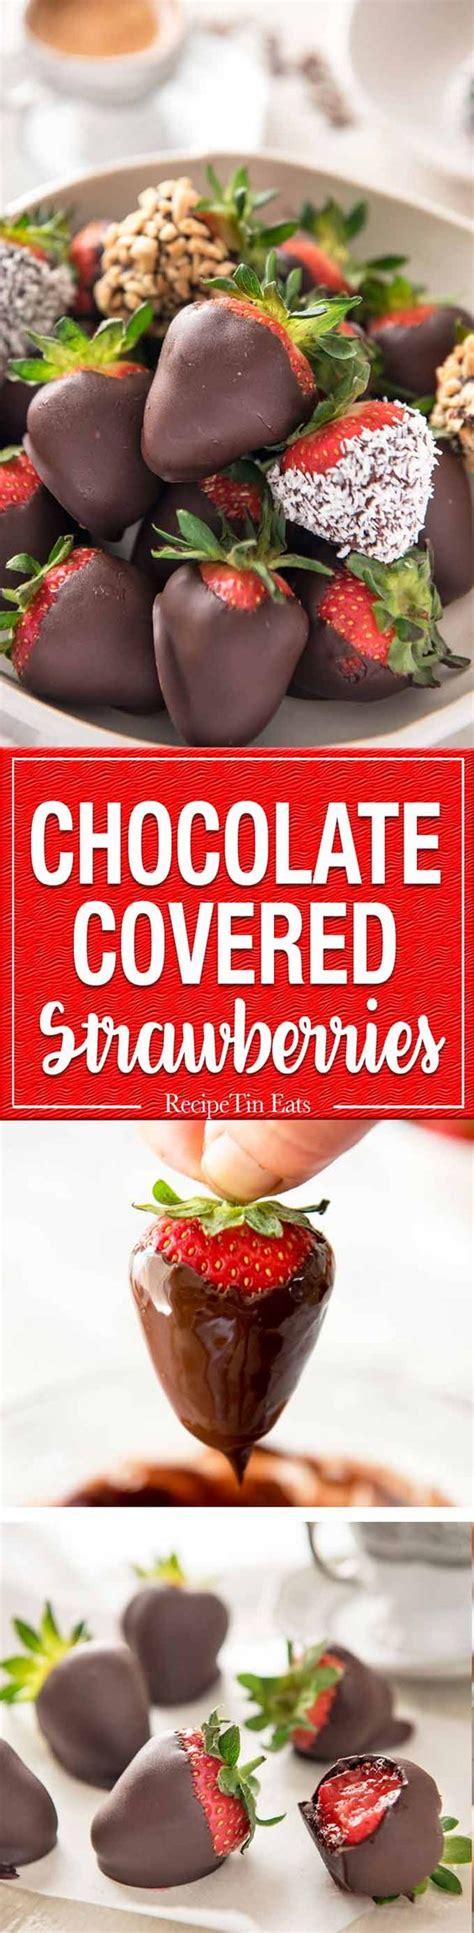 Chocolate Covered Strawberry Minus The Calories by Chocolate Covered Strawberries Recipe Kid Chocolate